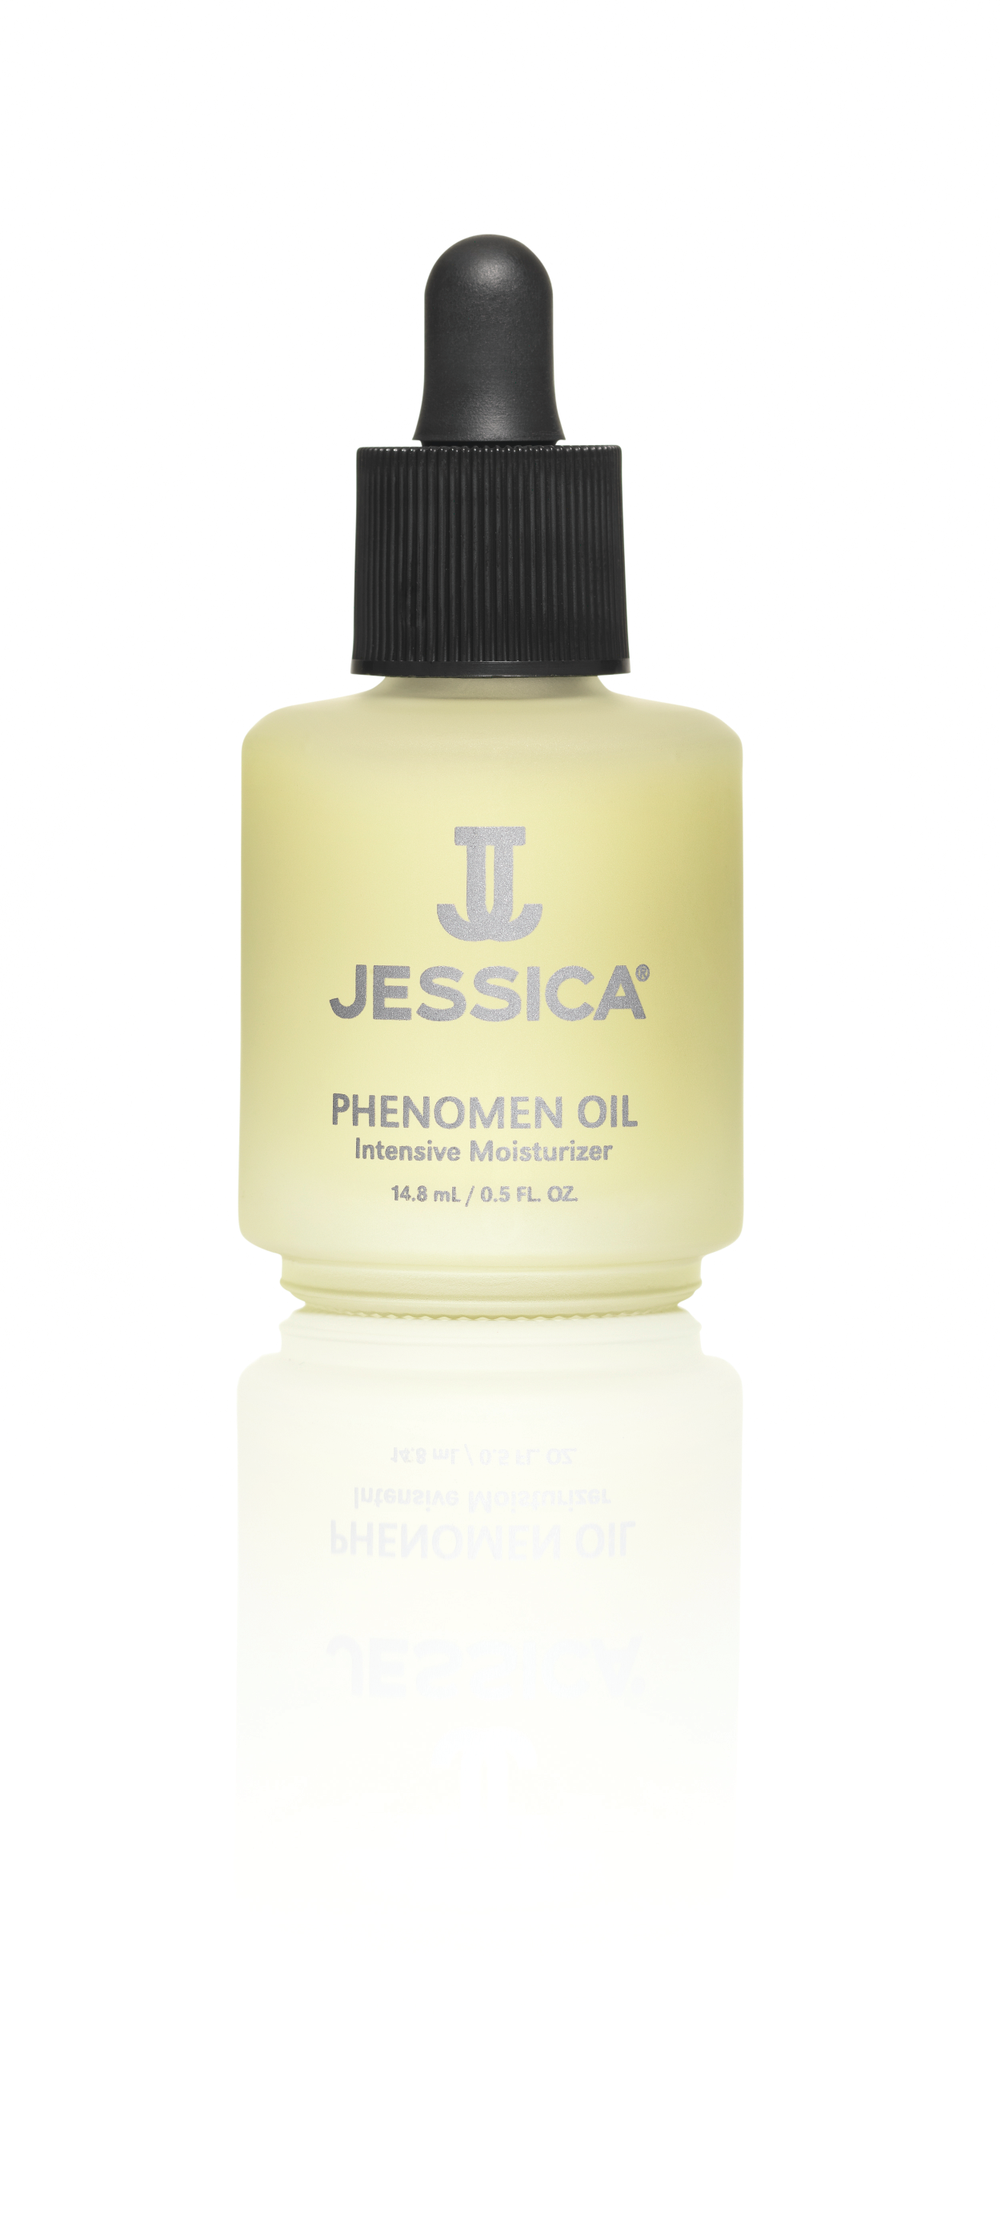 """<p>Jessica Cosmetics Phenomen<br /> Oil is an intensive moisturizer that stimulates the circulation in the nail and cuticle and rehydrates with healing jojoba, almond, and rice oils that soften the cuticle and promote nail growth. Phenomen Oil can also be used on elbows, feet, knees, and any other rough, dry areas that need extra moisture.<br /><a href=""""http://www.jessicacosmetics.com"""">www.jessicacosmetics.com</a></p>"""